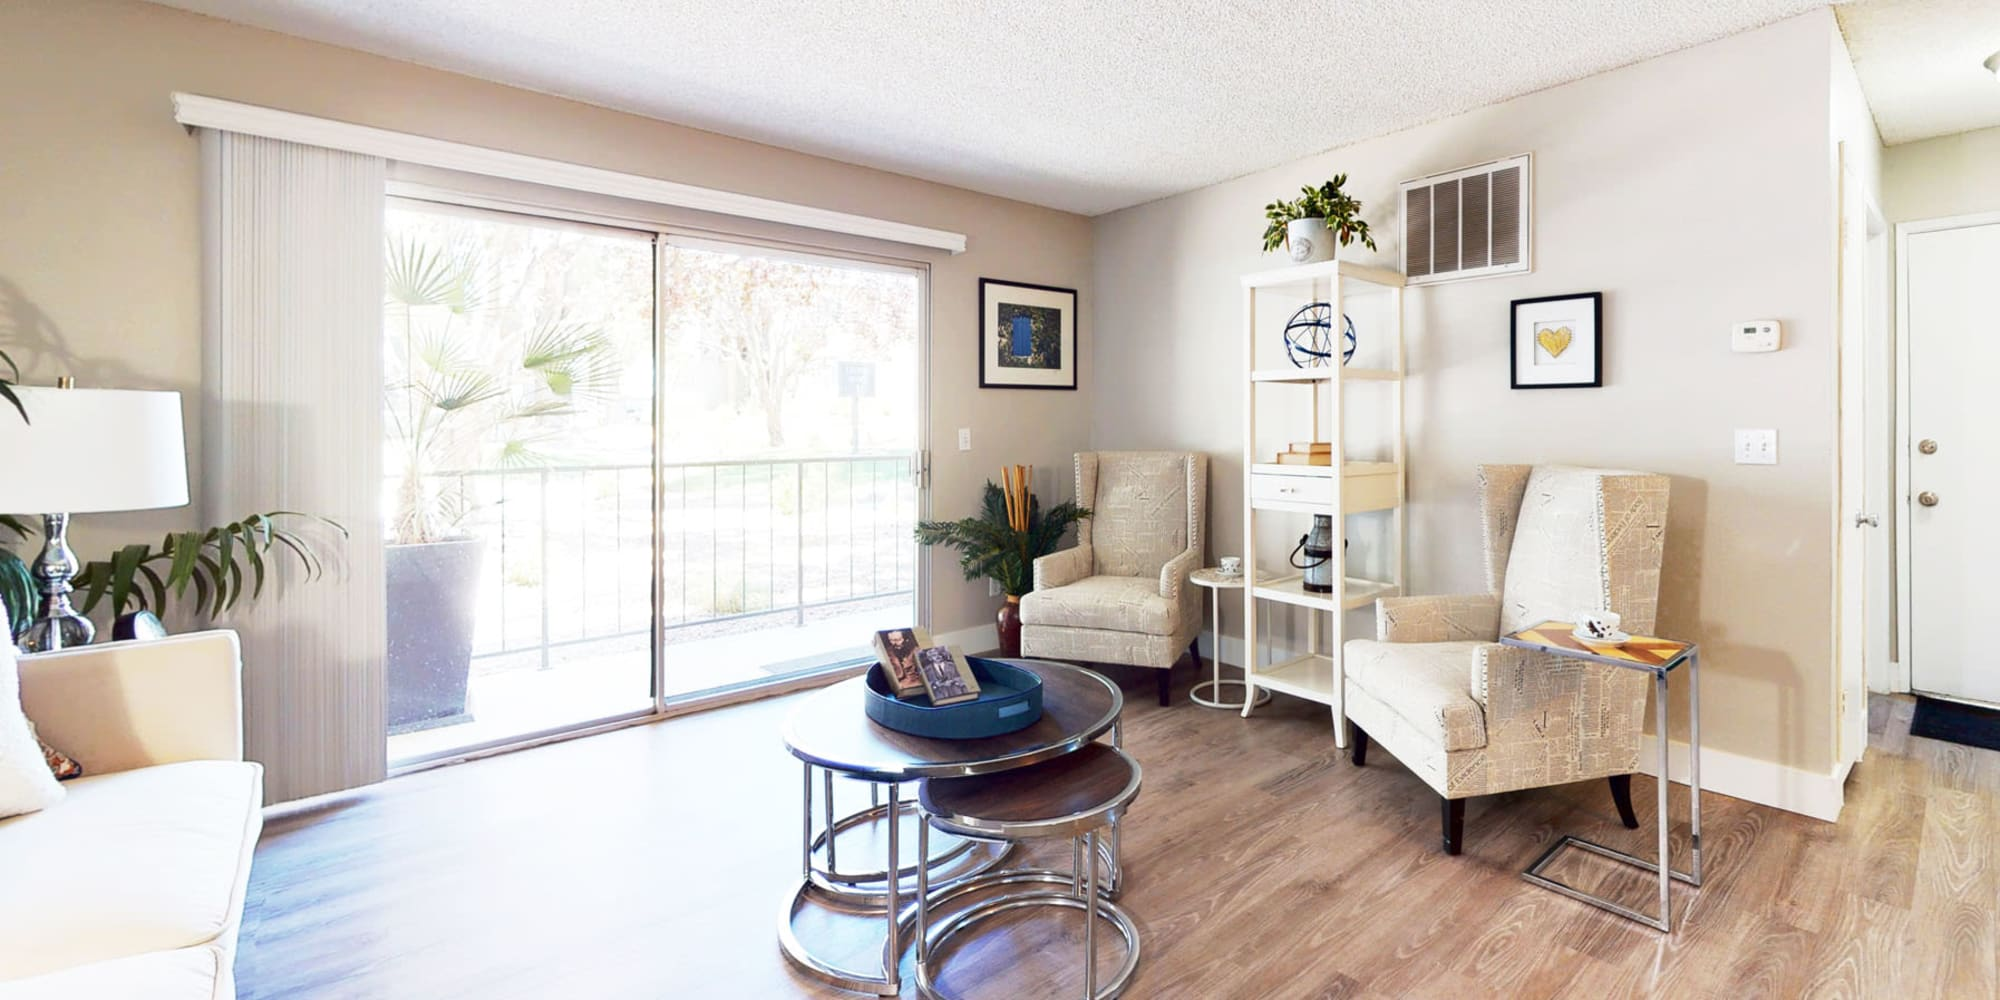 Modern furnishings in a model home's living area with a view of the private balcony outside at Mountain Vista in Victorville, California